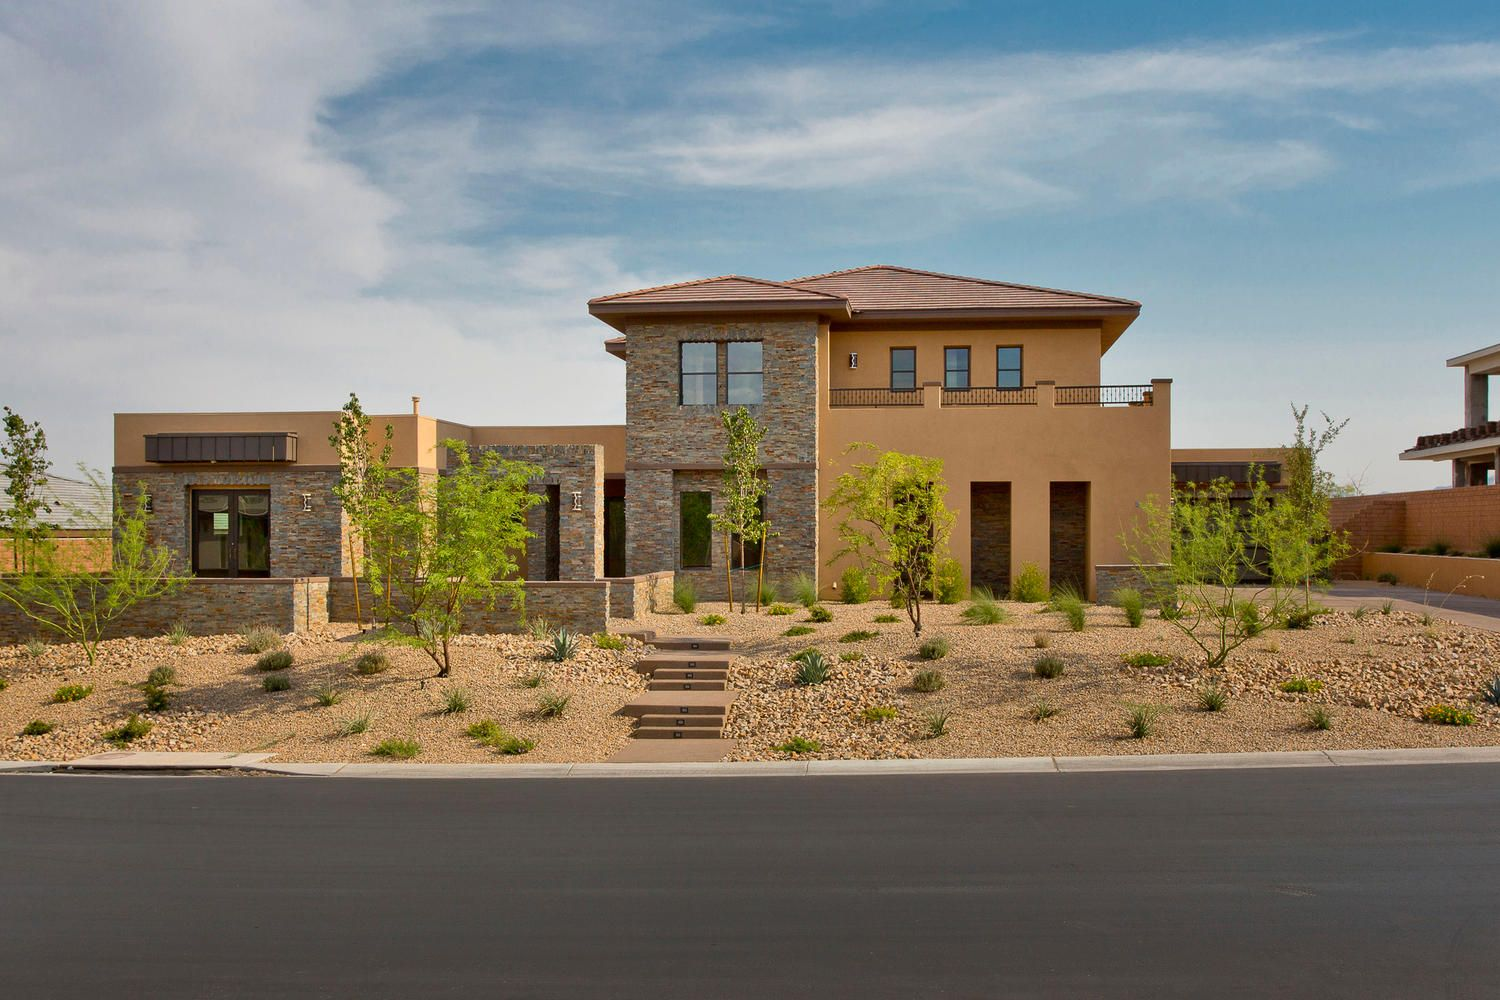 I liked this suburban home in Las Vegas, Nevada